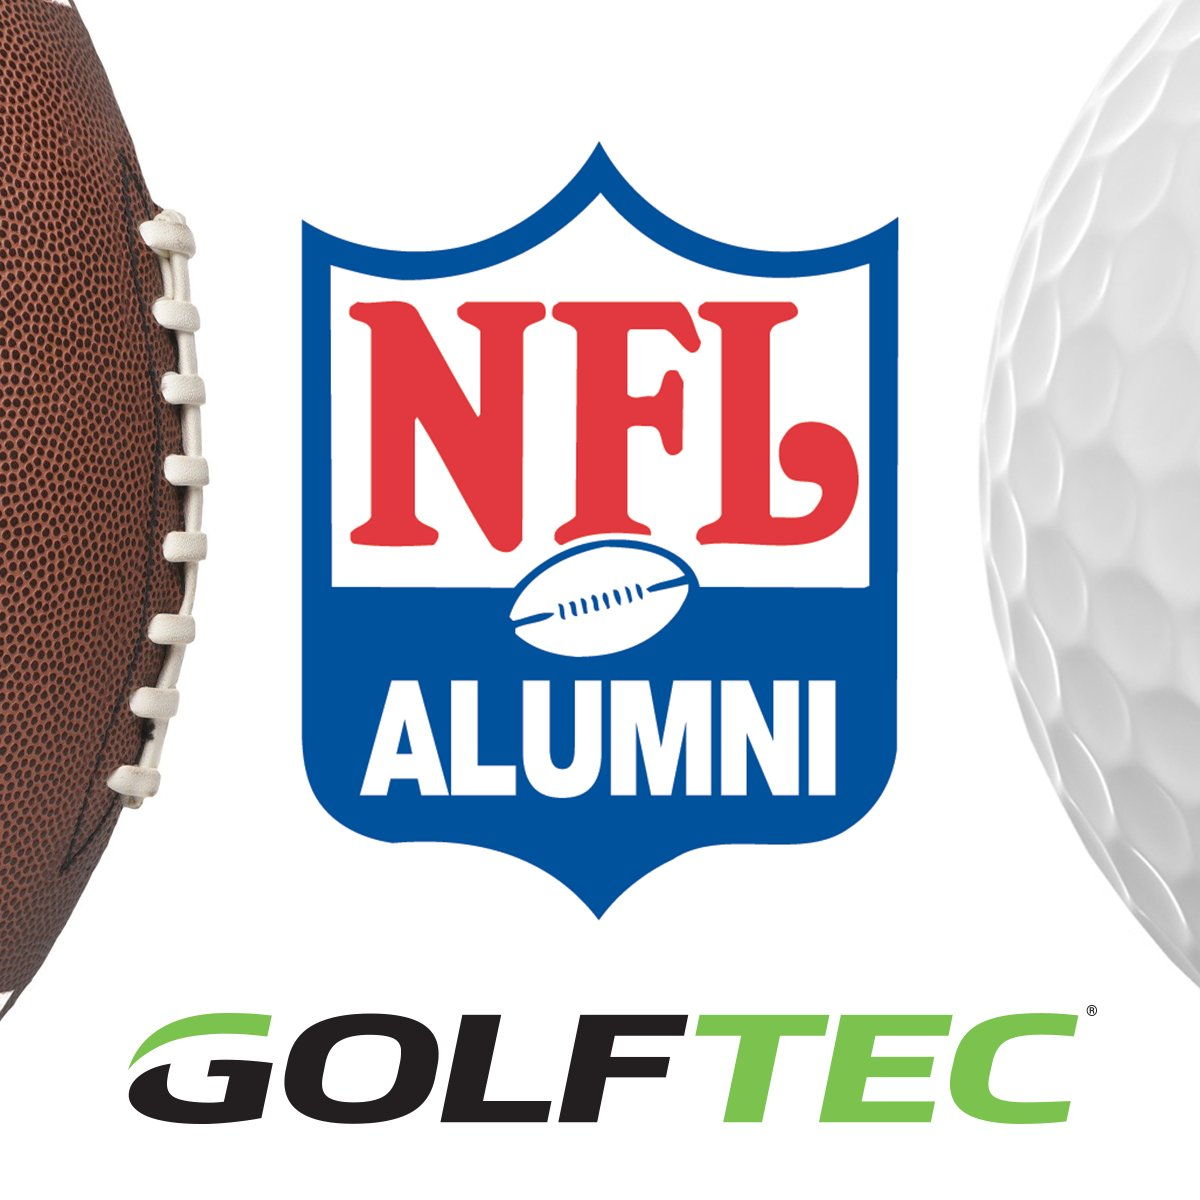 GOLFTEC is excited to become the Official Golf Instruction Partner of the NFL Alumni and to support their incredible charity efforts! You can learn more about this new partnership here: http://bit.ly/NFLAlumniGOLFTEC…pic.twitter.com/1ZuYr9Ktaj